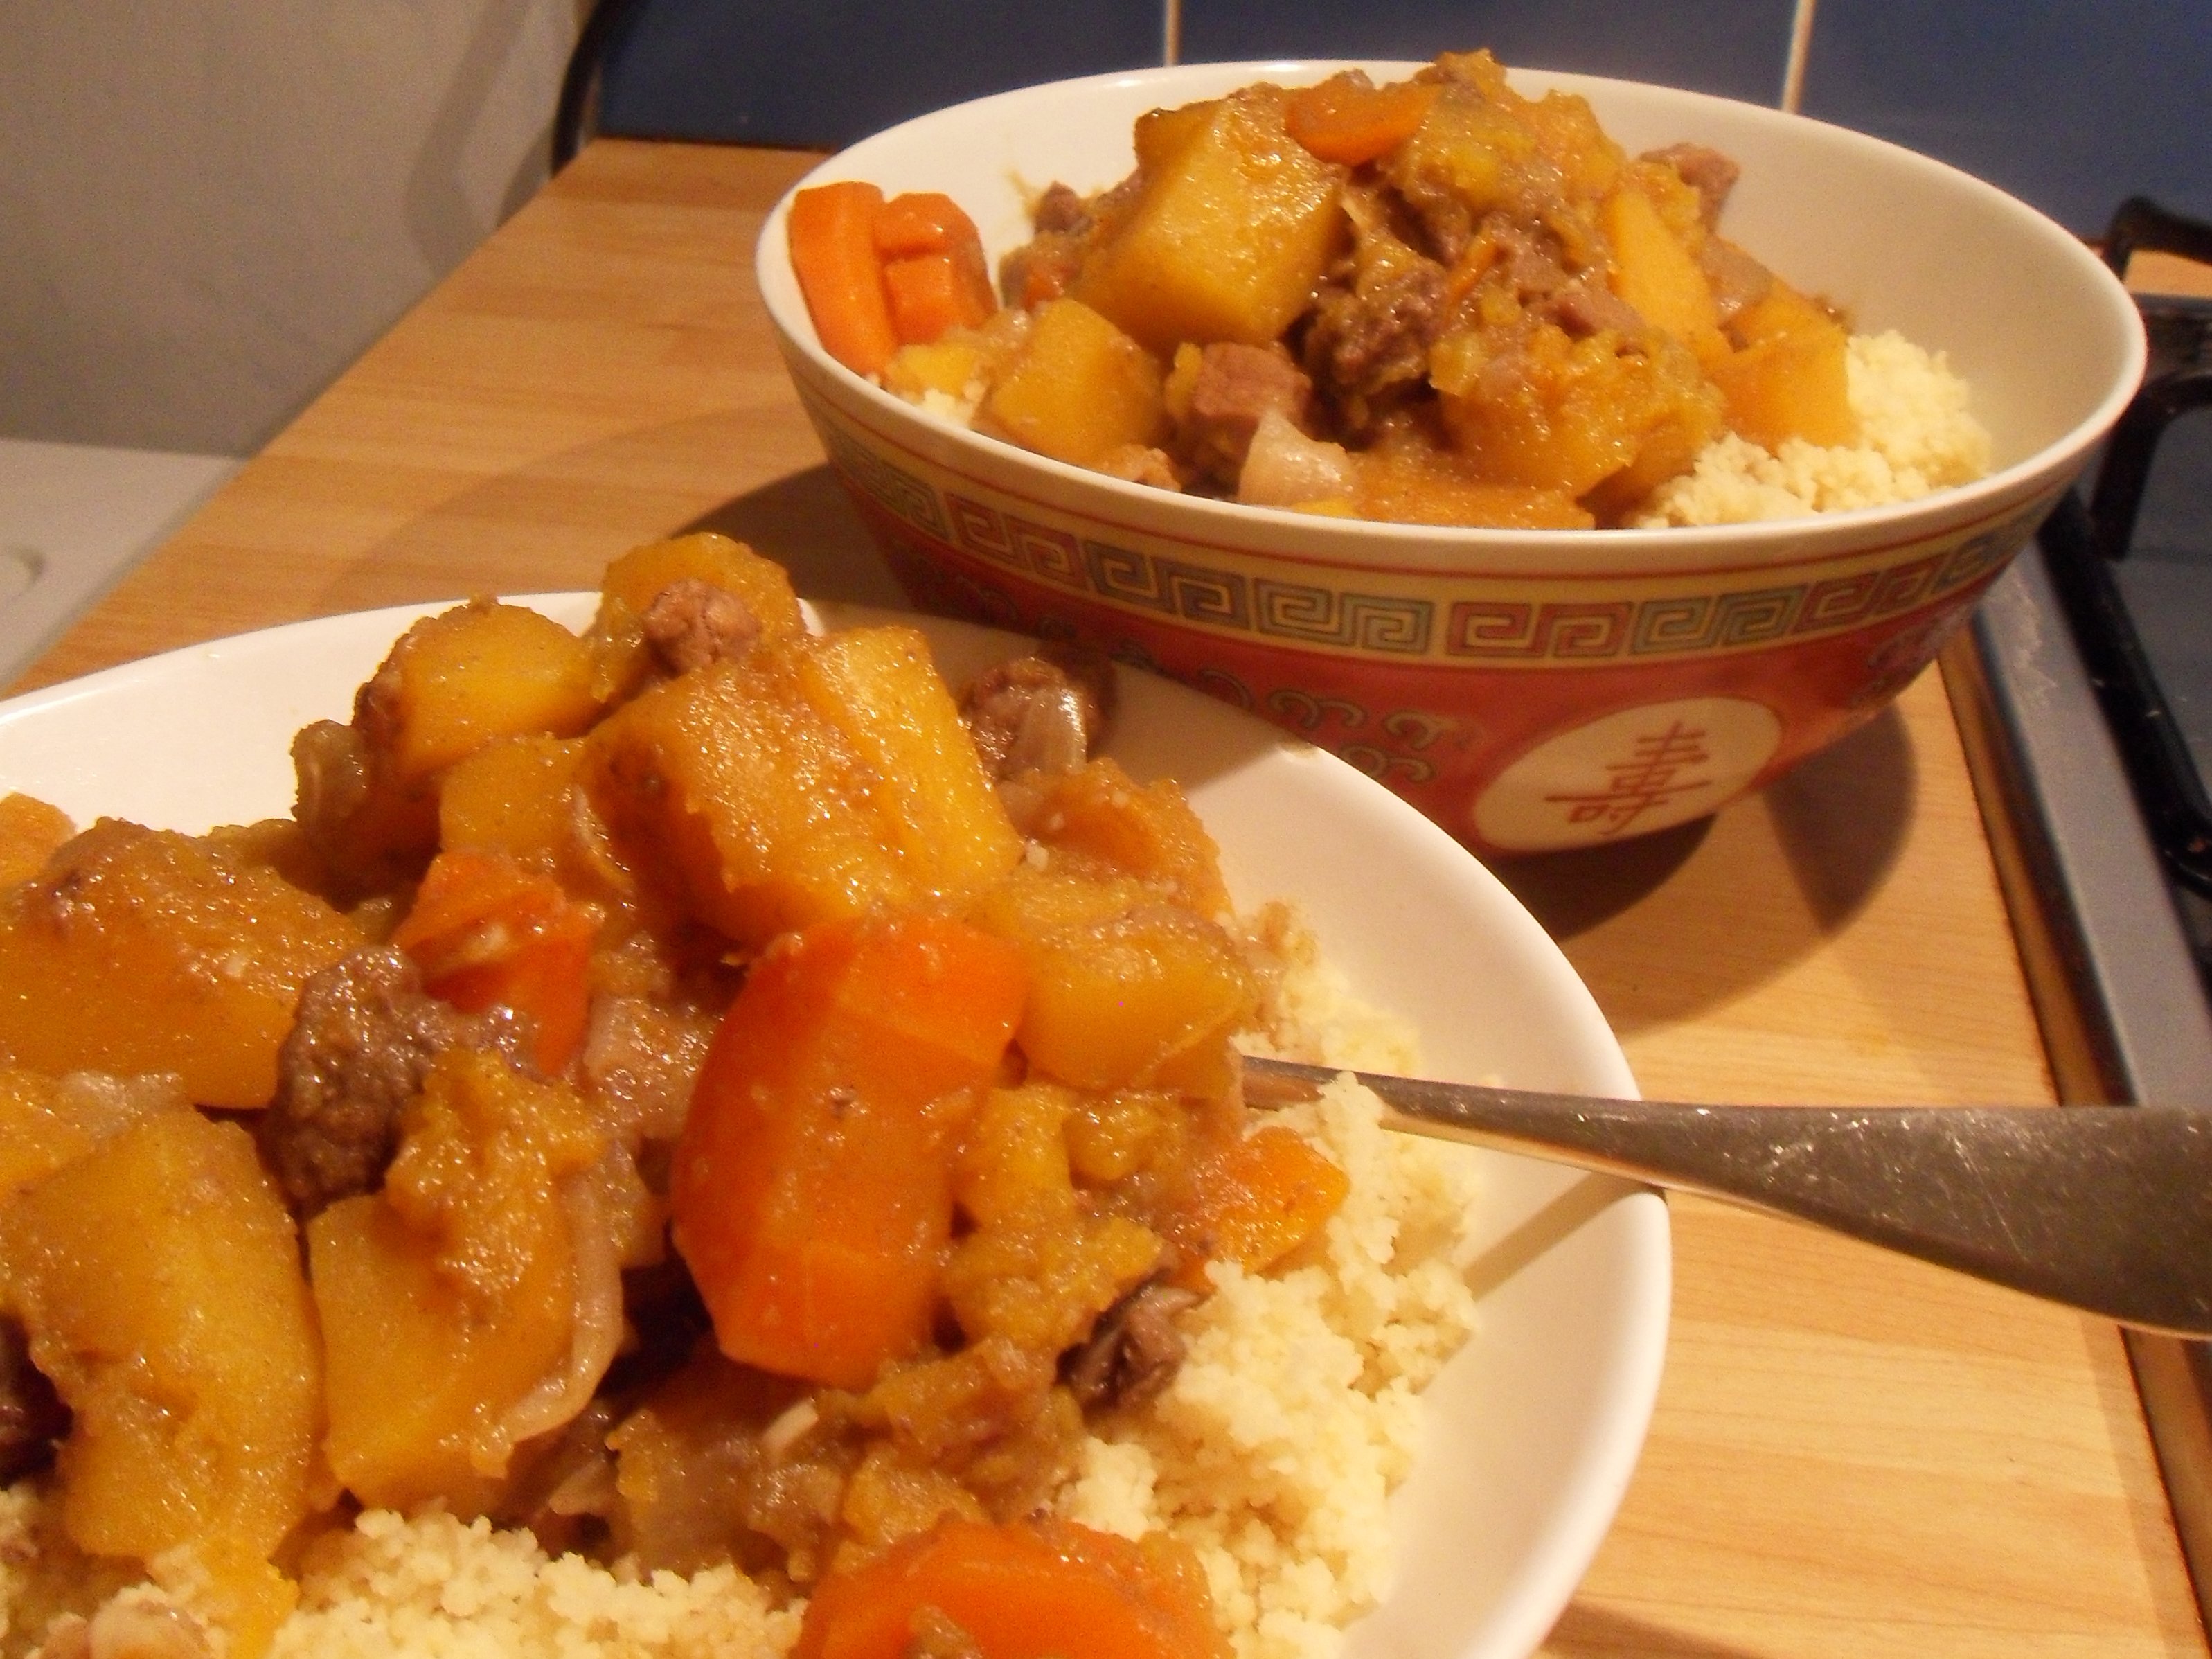 Moroccan Beef Tagine with Butternut Squash